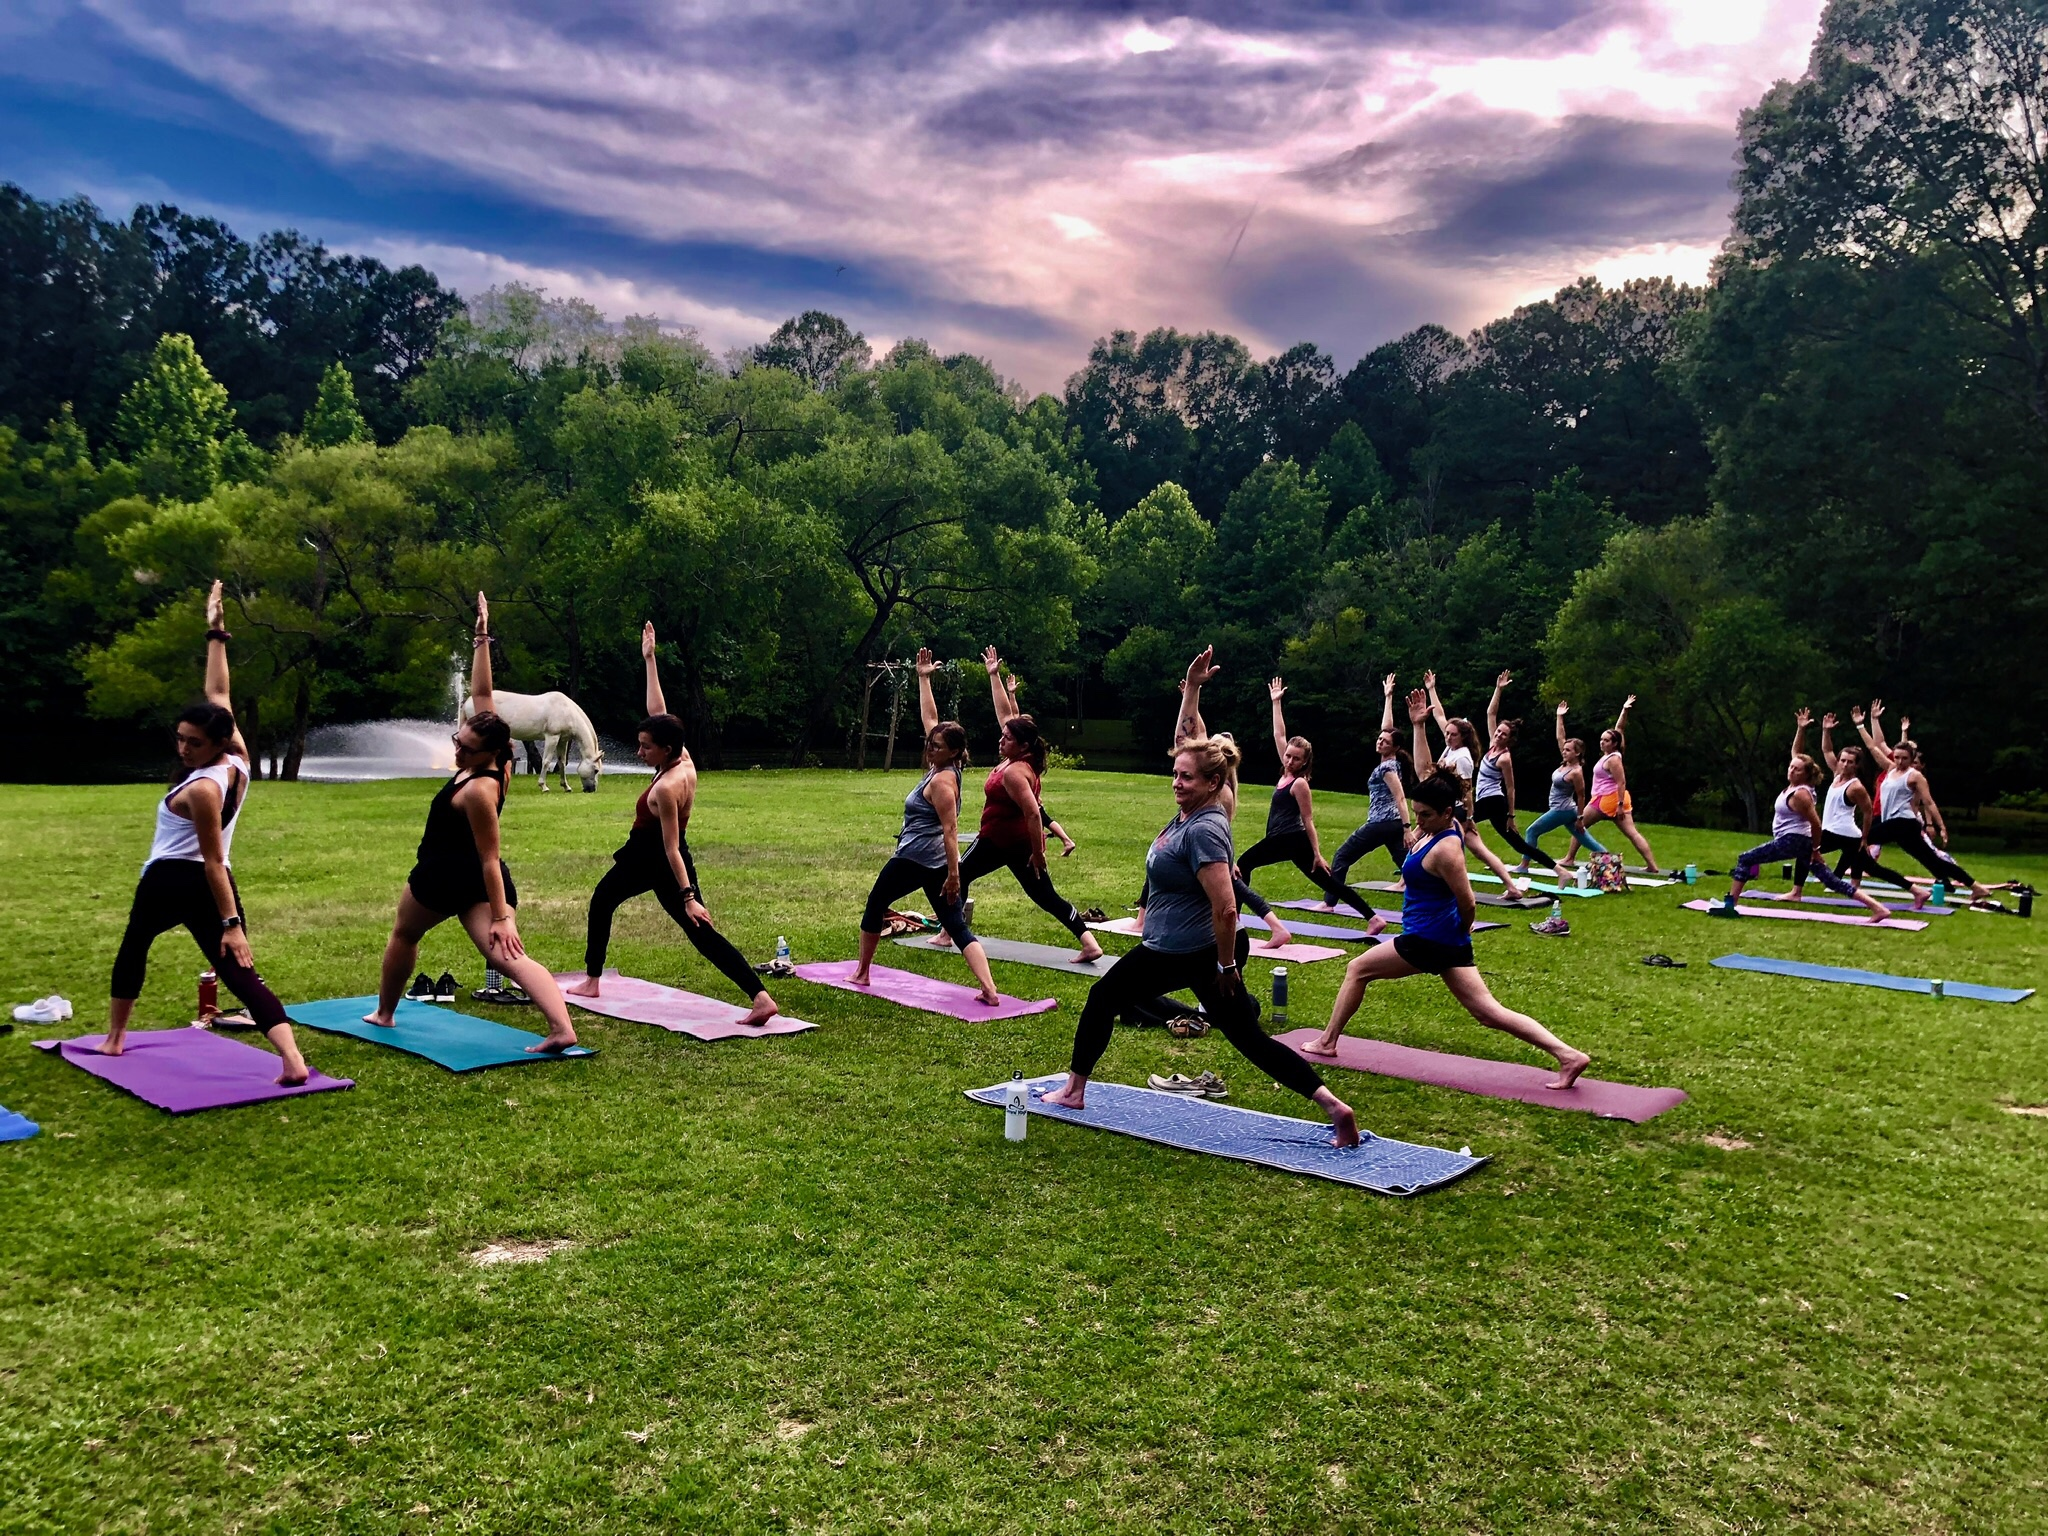 Sunset Yoga - Join us for an evening of sunset Yoga on the farm ever Tuesday. Donation based class with a $5 minimum. A portion of the proceeds will go to a local charity picked by the class. 7:30 to 8:30, everyone is invited.